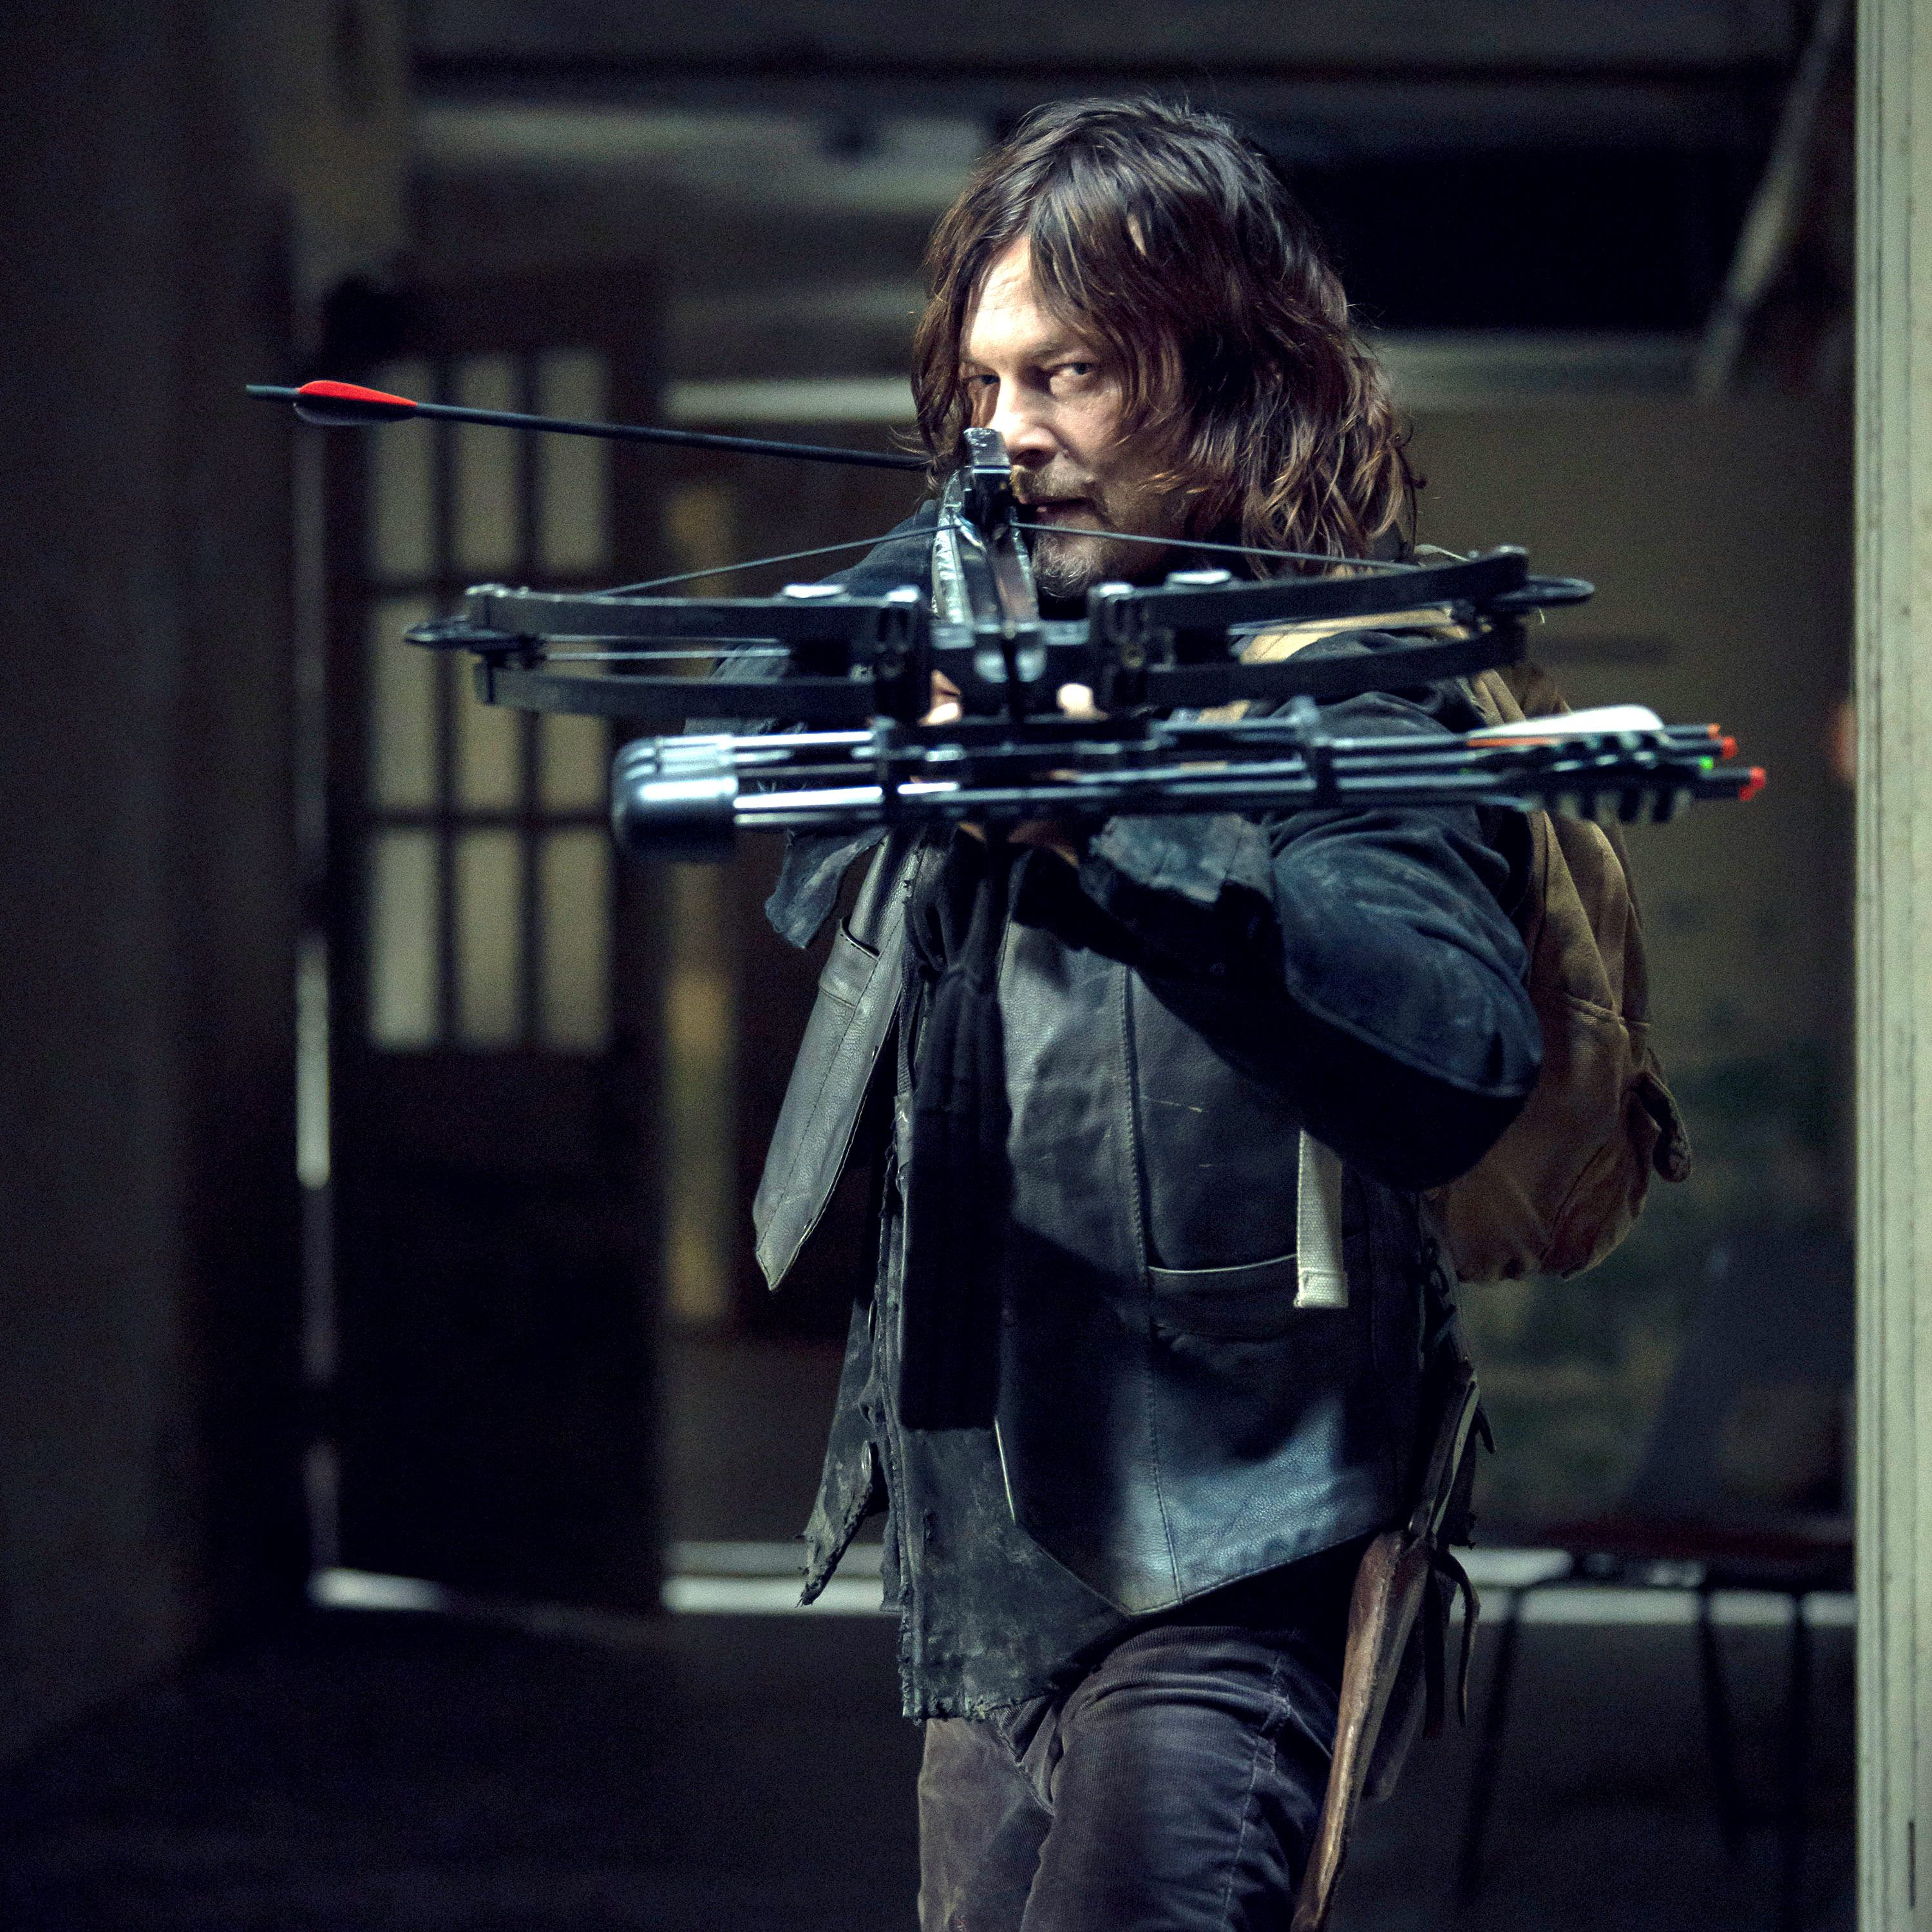 Norman Reedus aiming his archery